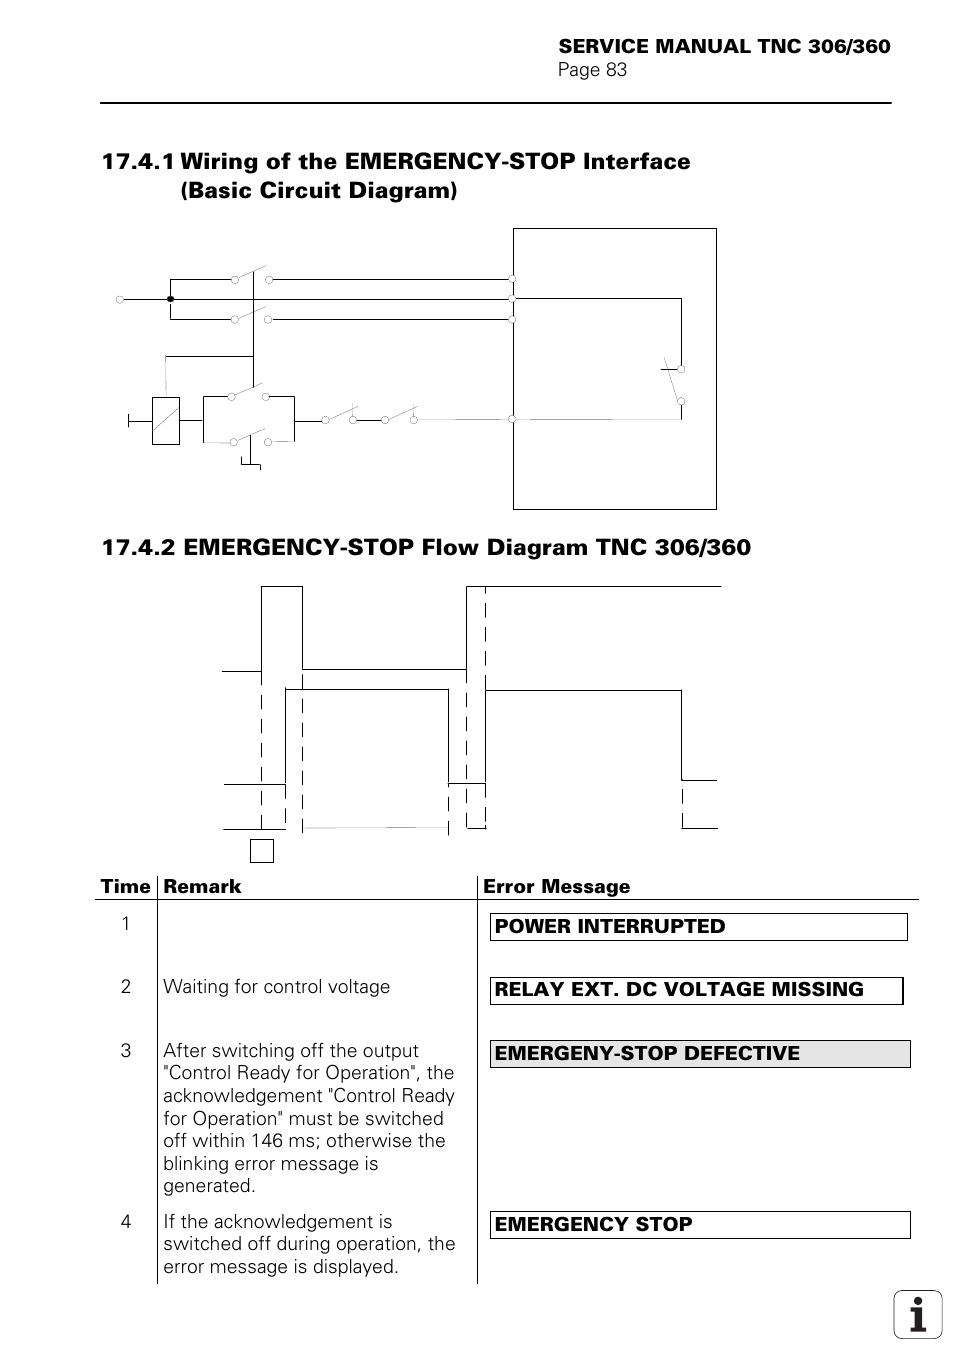 medium resolution of emergency stop relay ext dc voltage missing heidenhain tnc 306 service manual user manual page 90 157